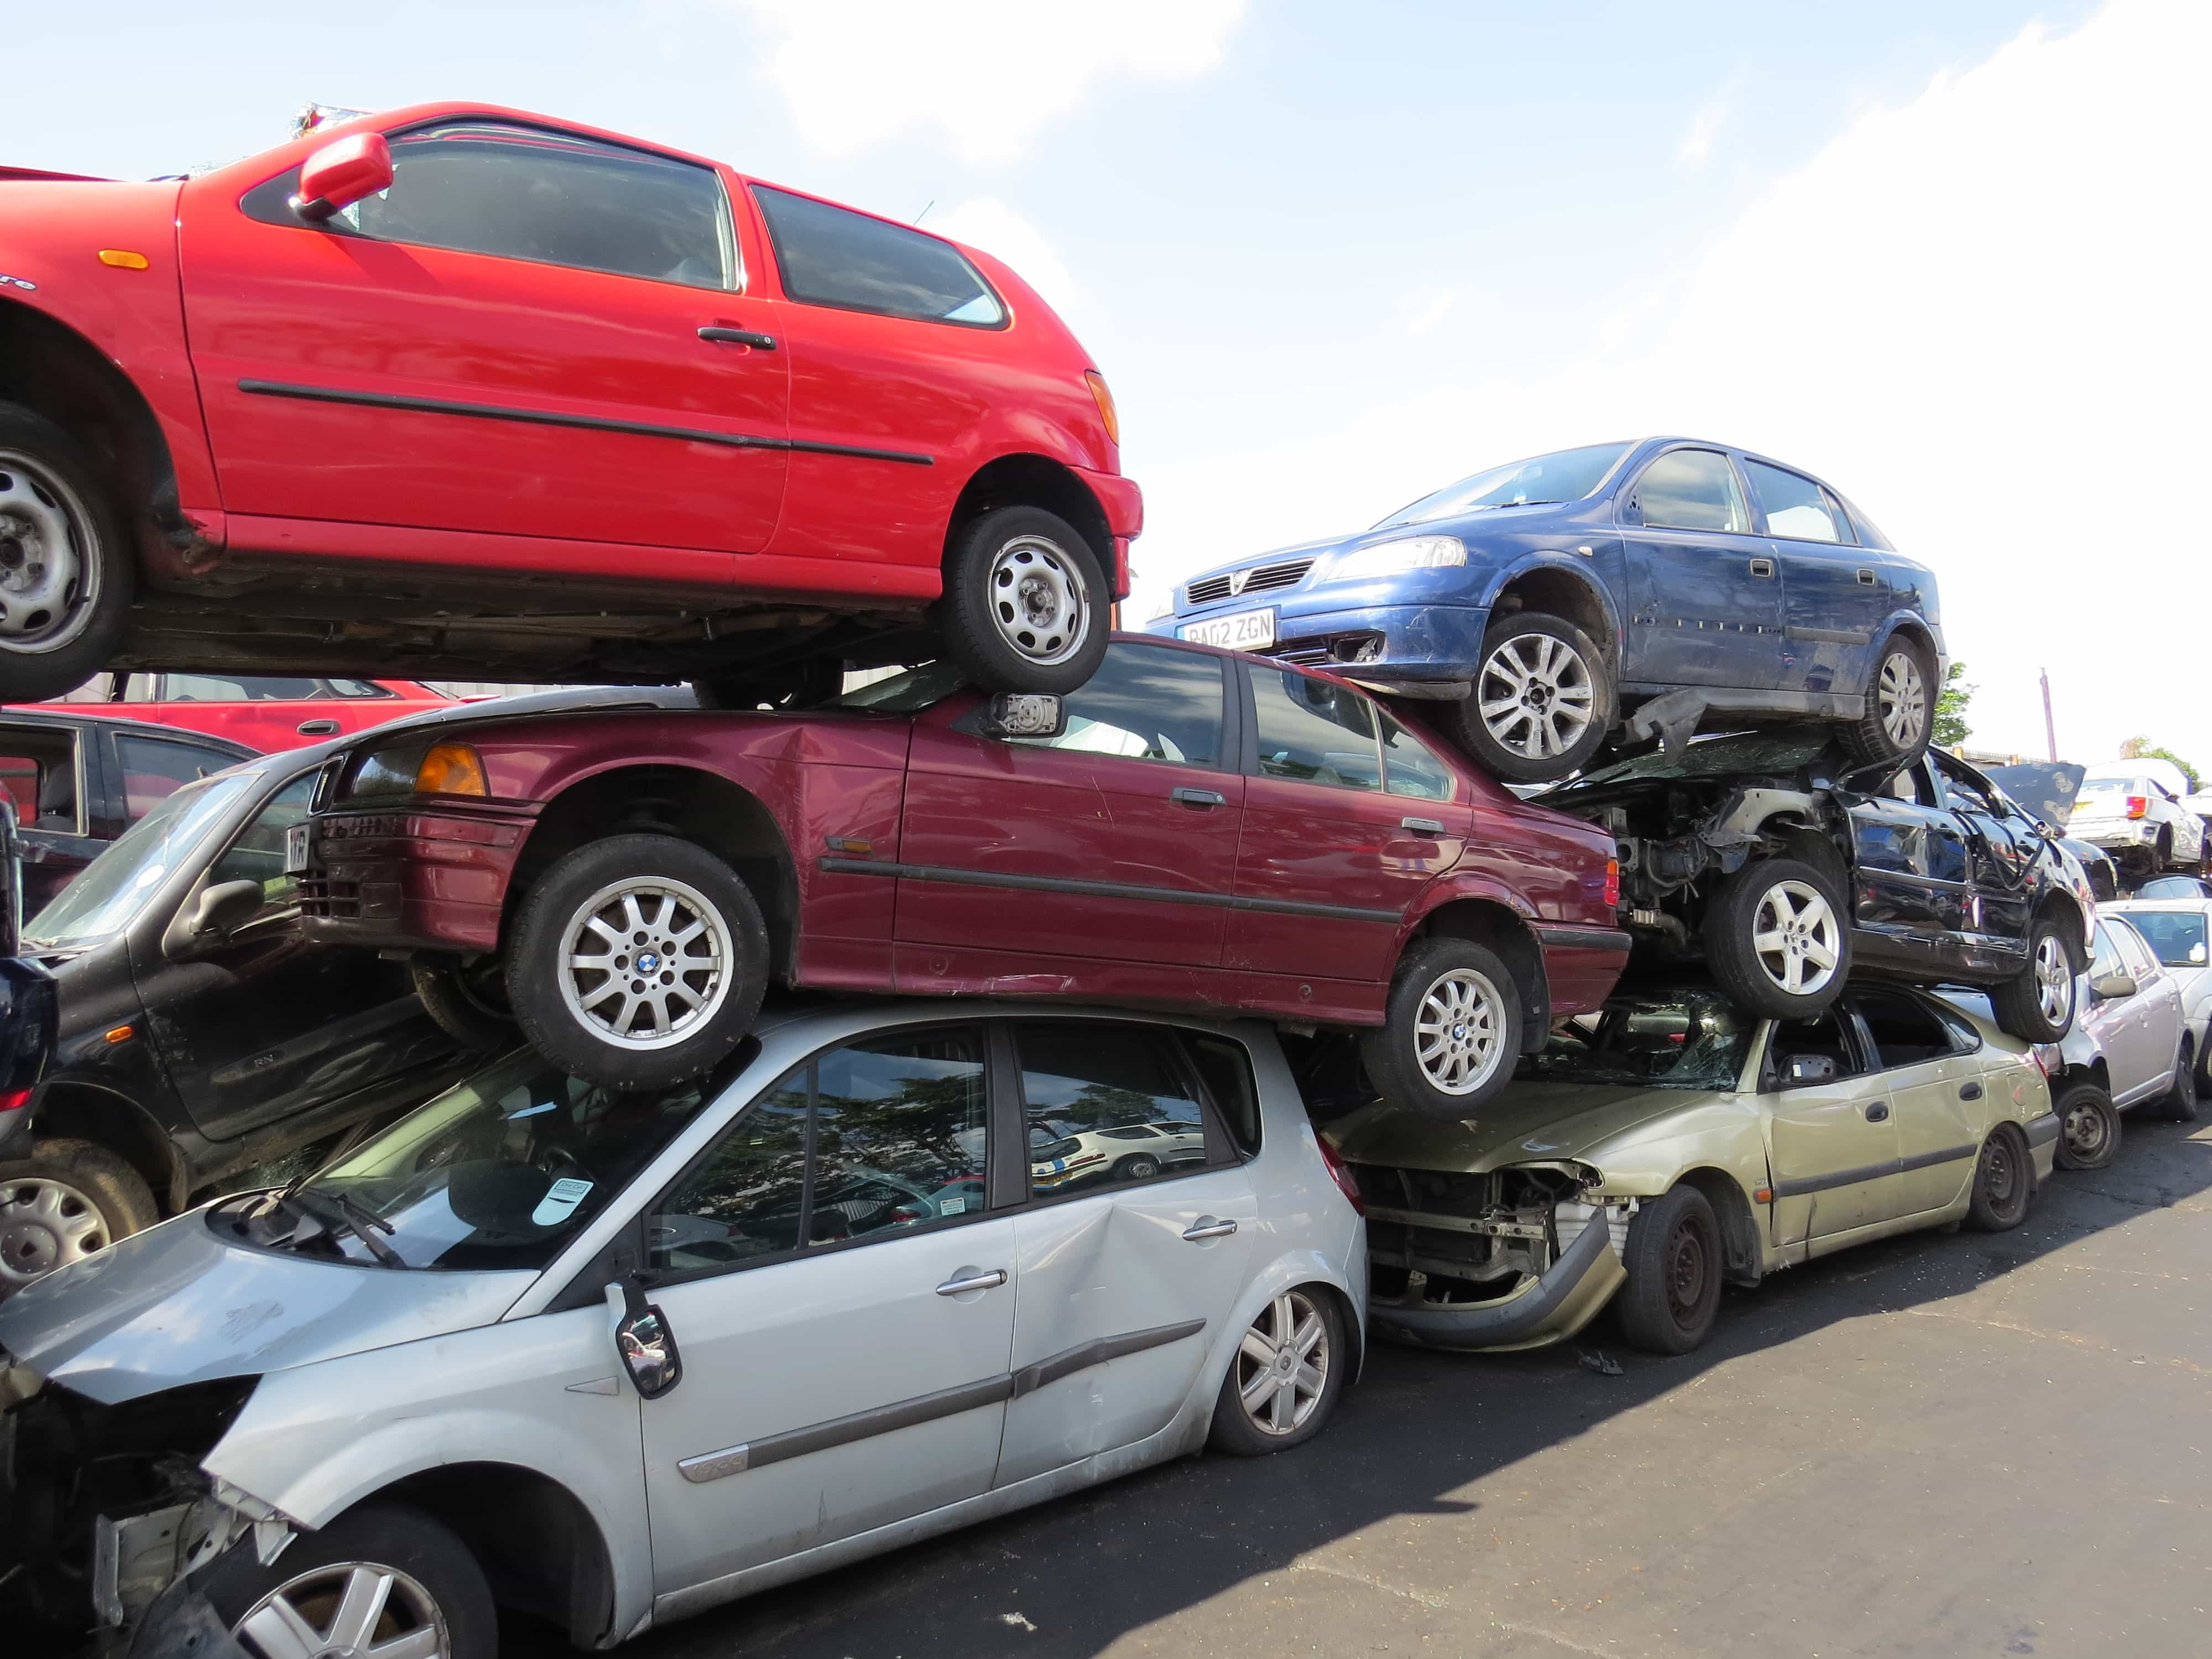 Car Manufacturers Vacancies Car Recycling Scheme Launched For Uk's 'orphan' Elvs